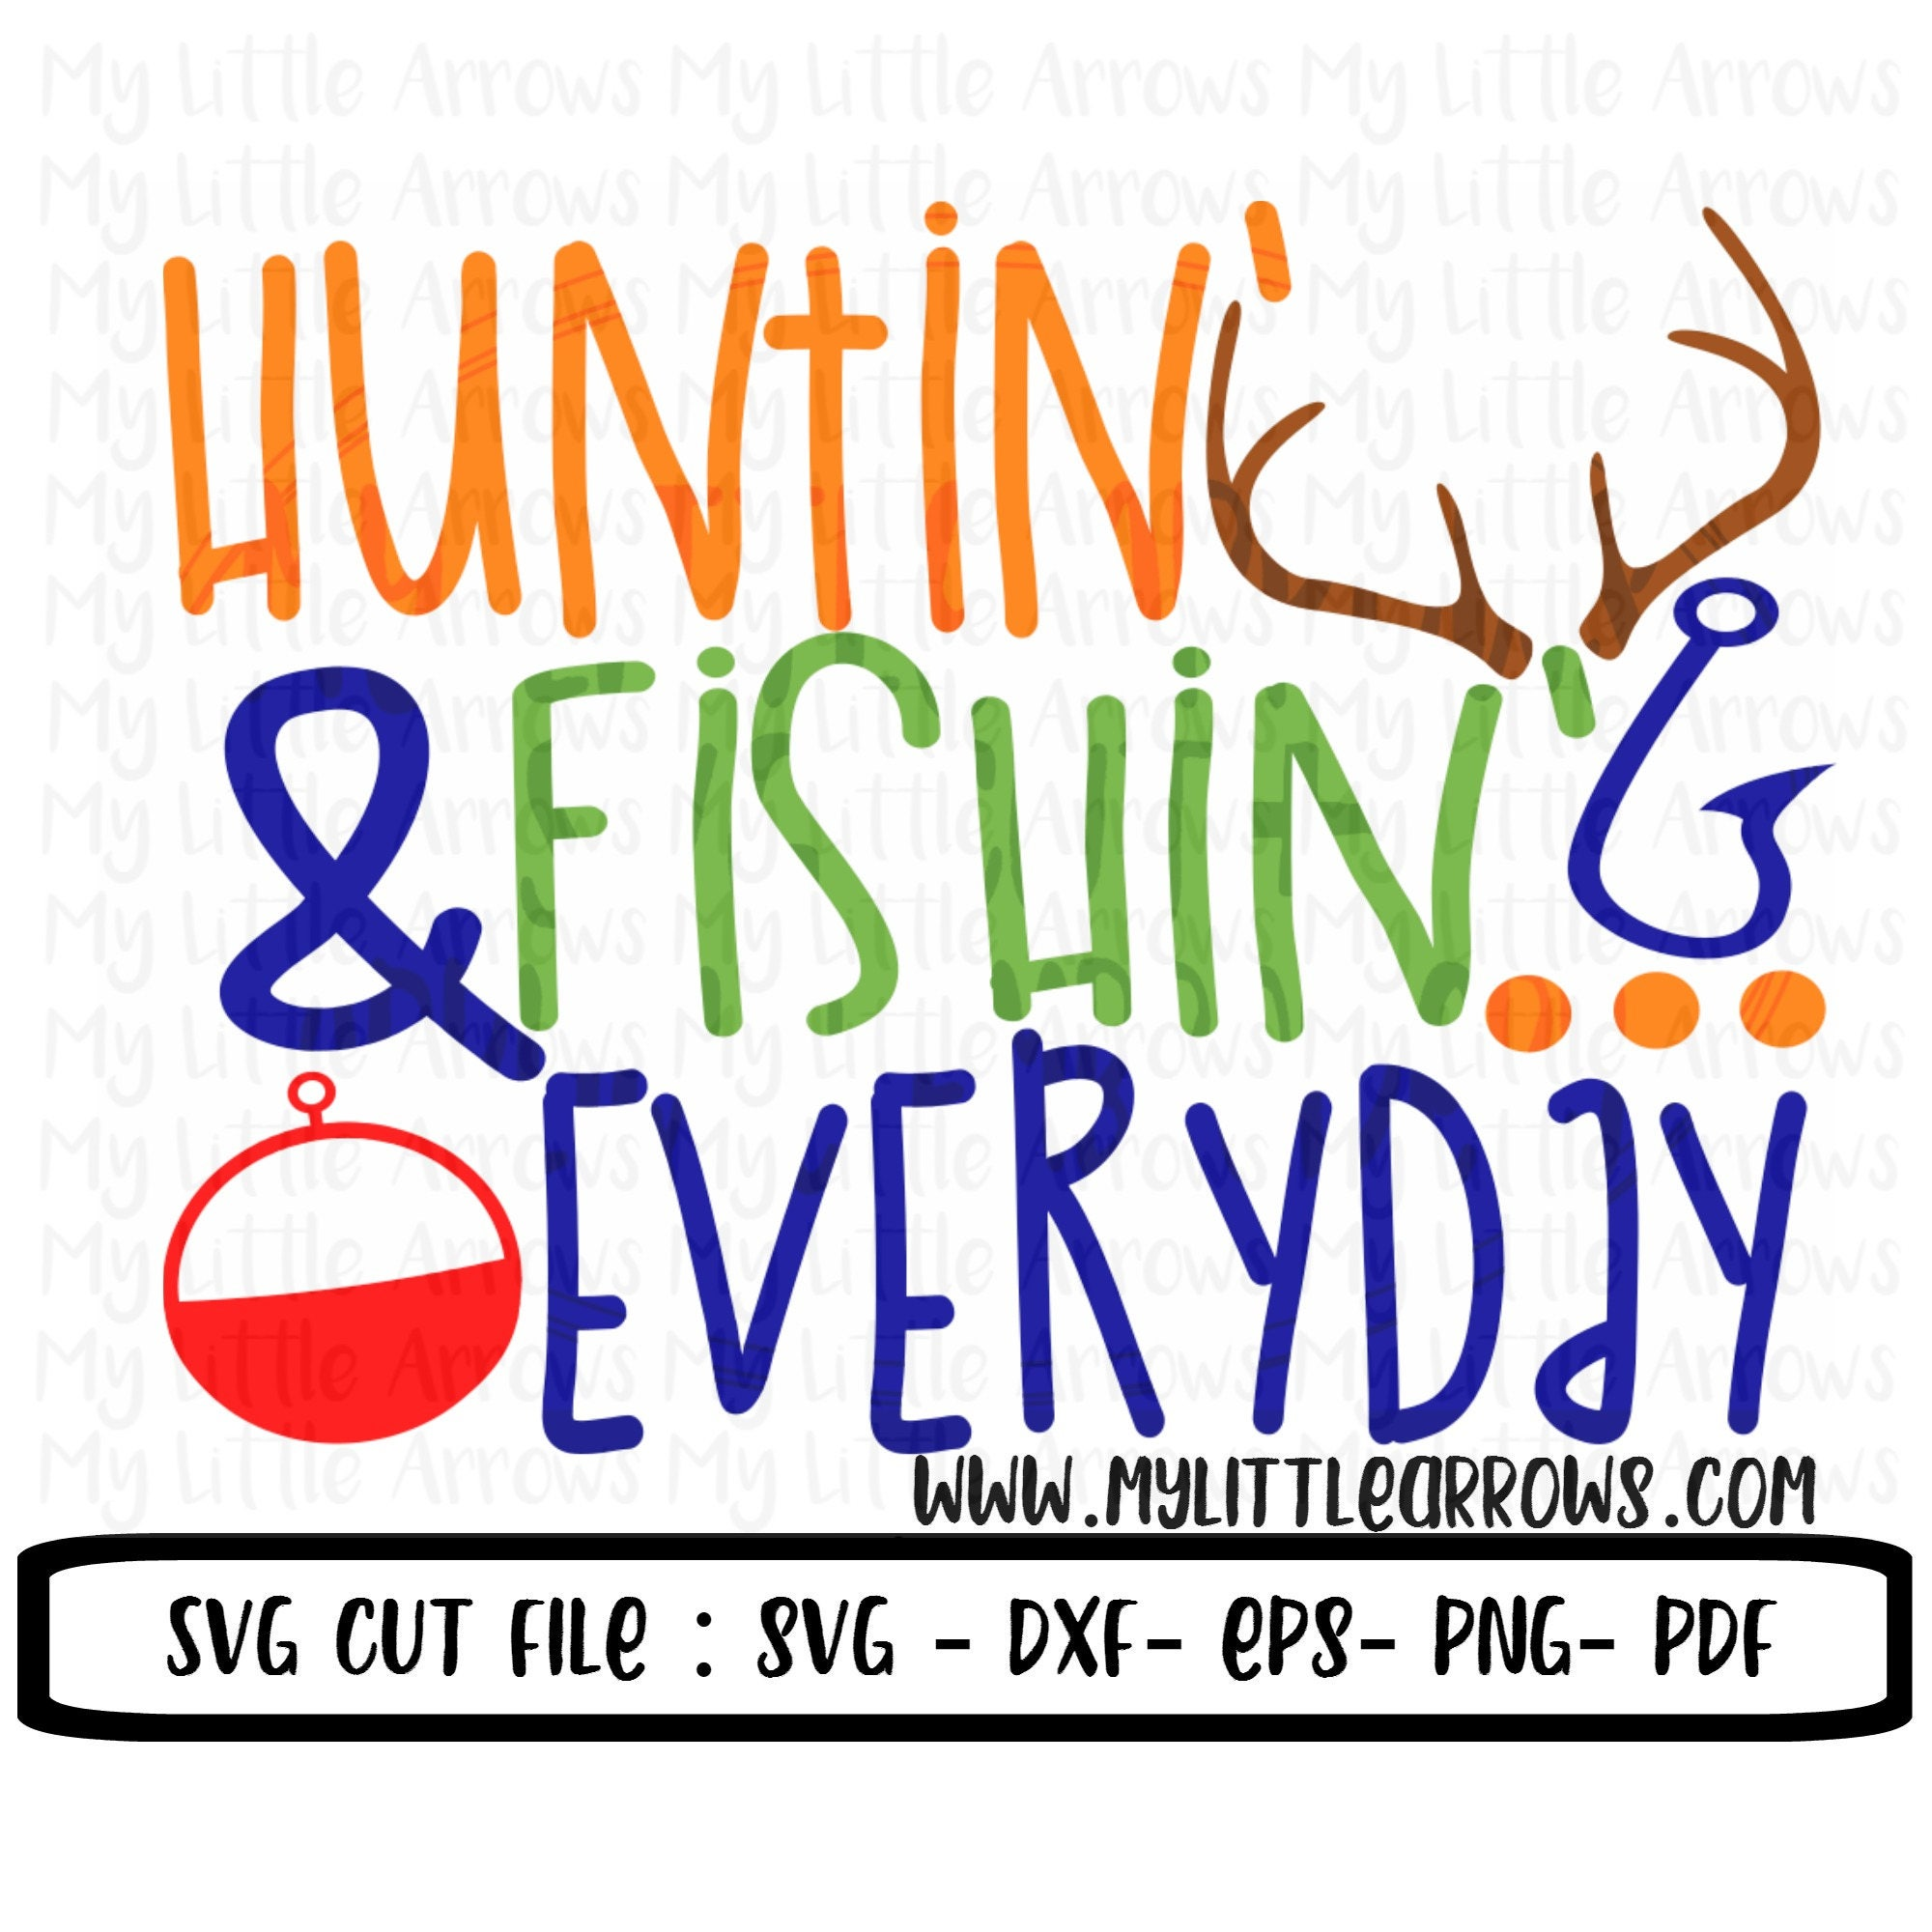 Hunting and fishing everyday svg dxf eps png files for for Hunting fishing loving everyday